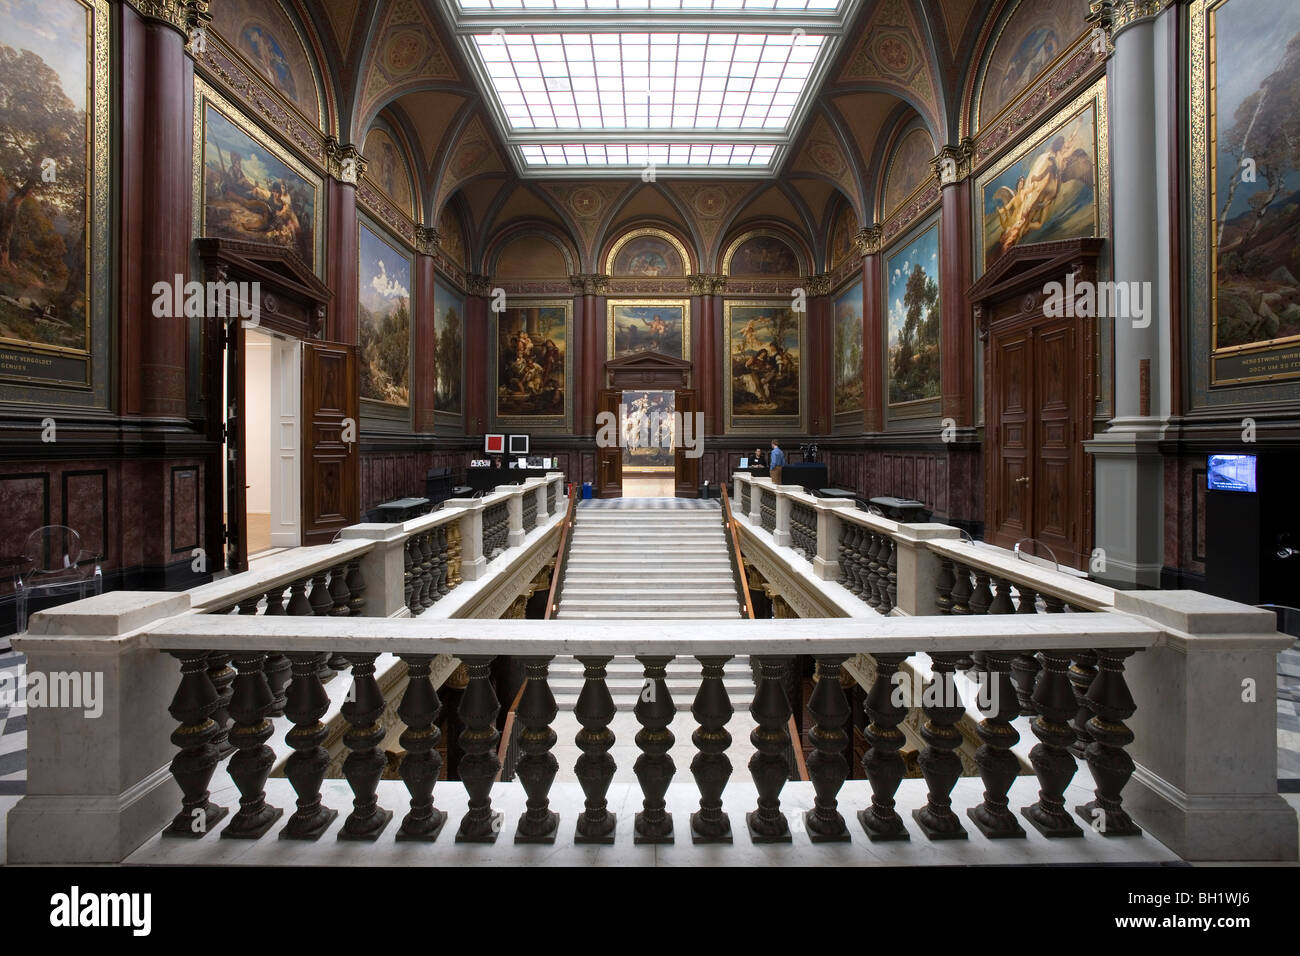 Staircase in the Hamburger Kunsthalle, Hanseatic city of Hamburg, Germany, Europe - Stock Image